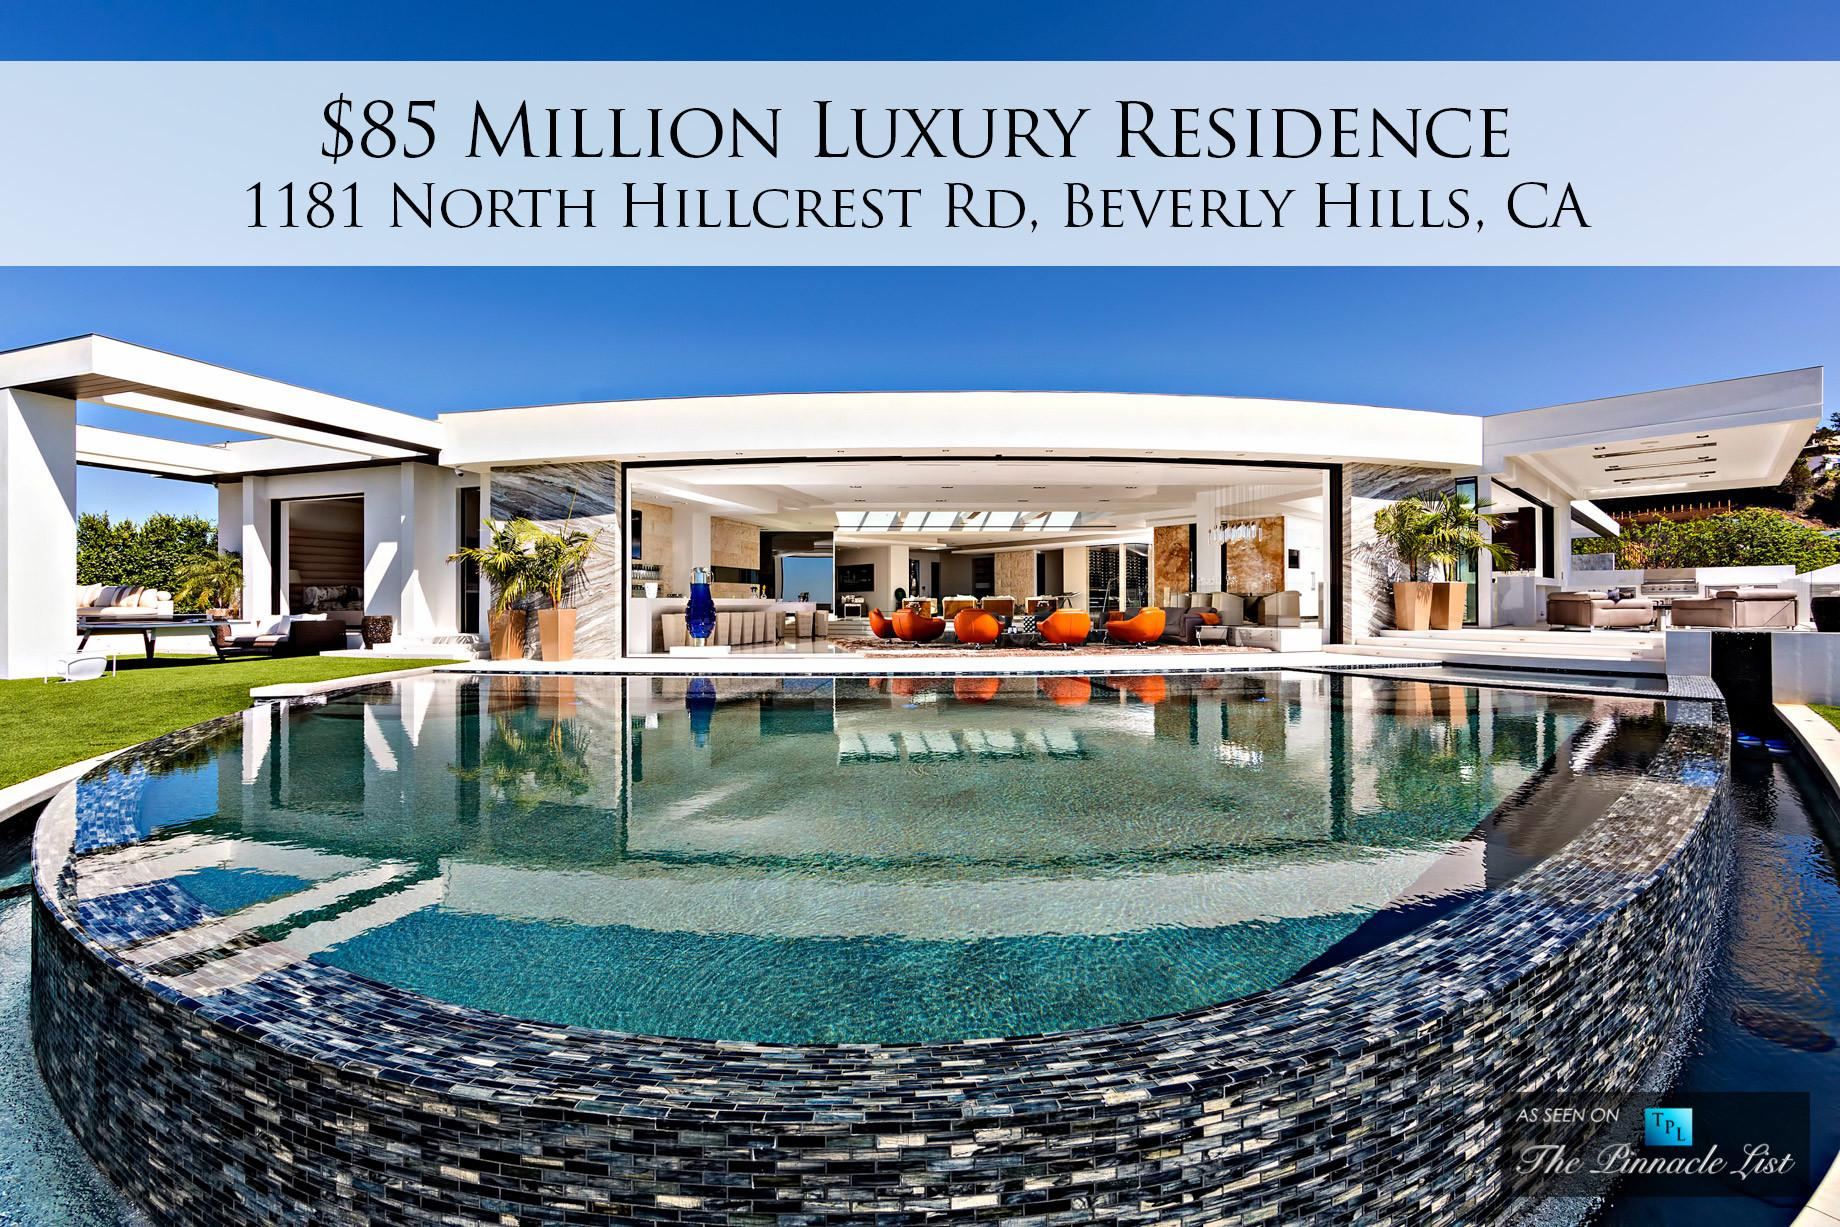 Million Luxury Residence 1181 North Hillcrest